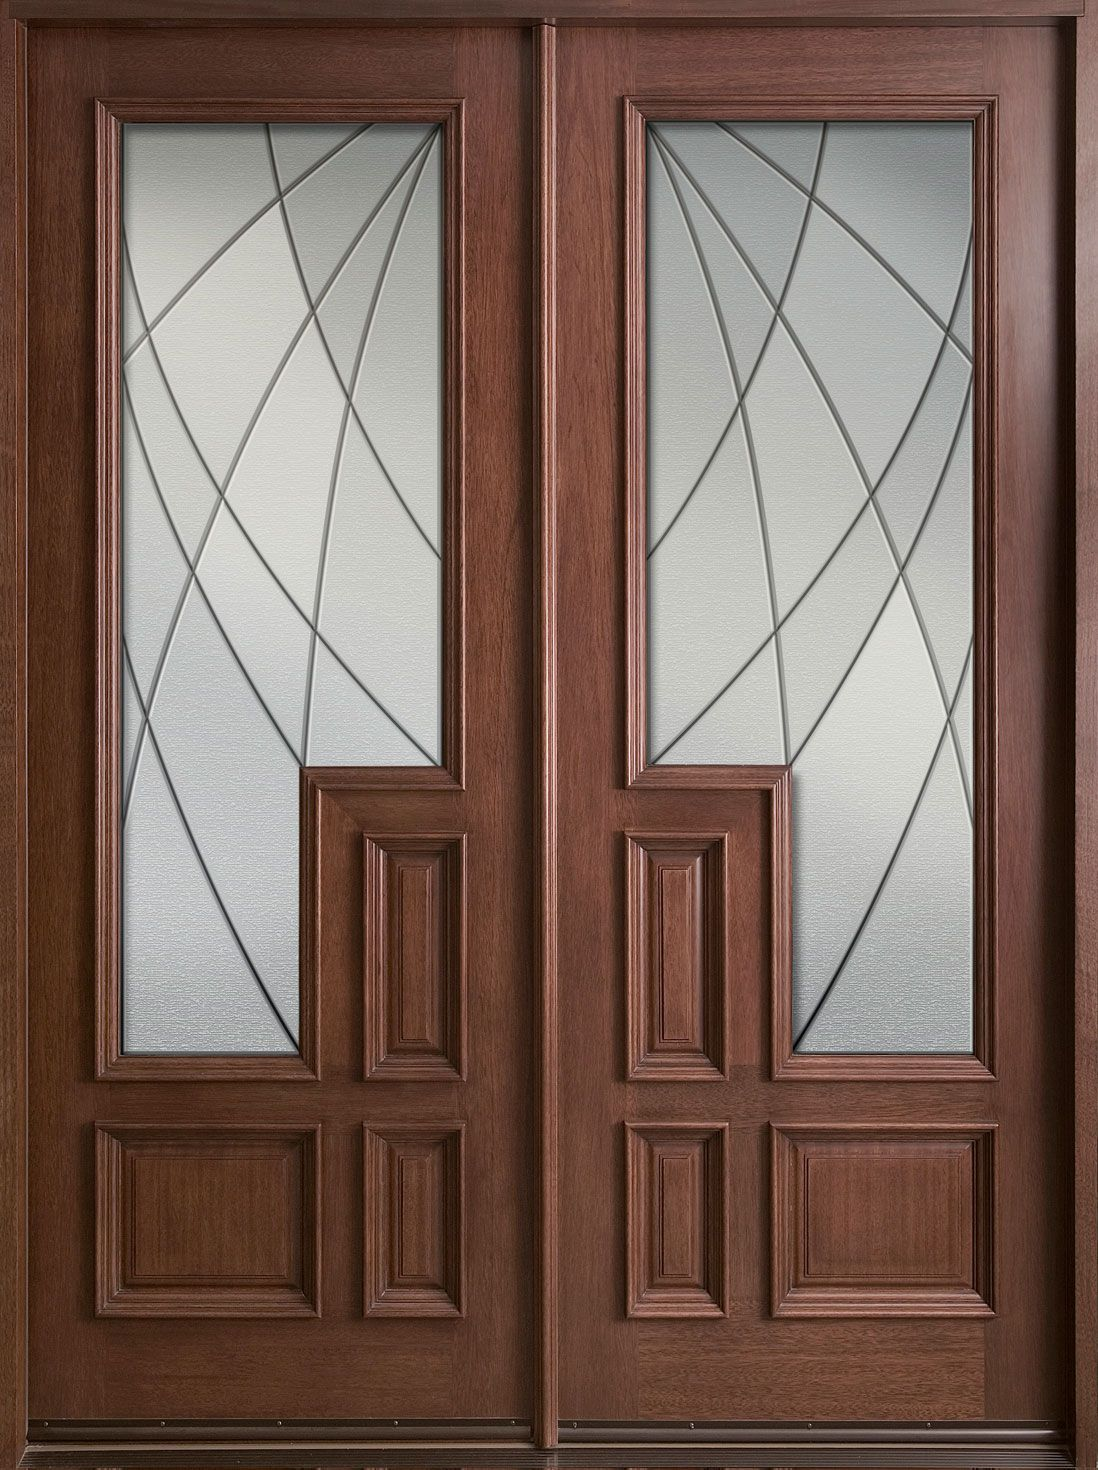 Inspiring double fiberglass entry door as furniture for for Exterior front double doors